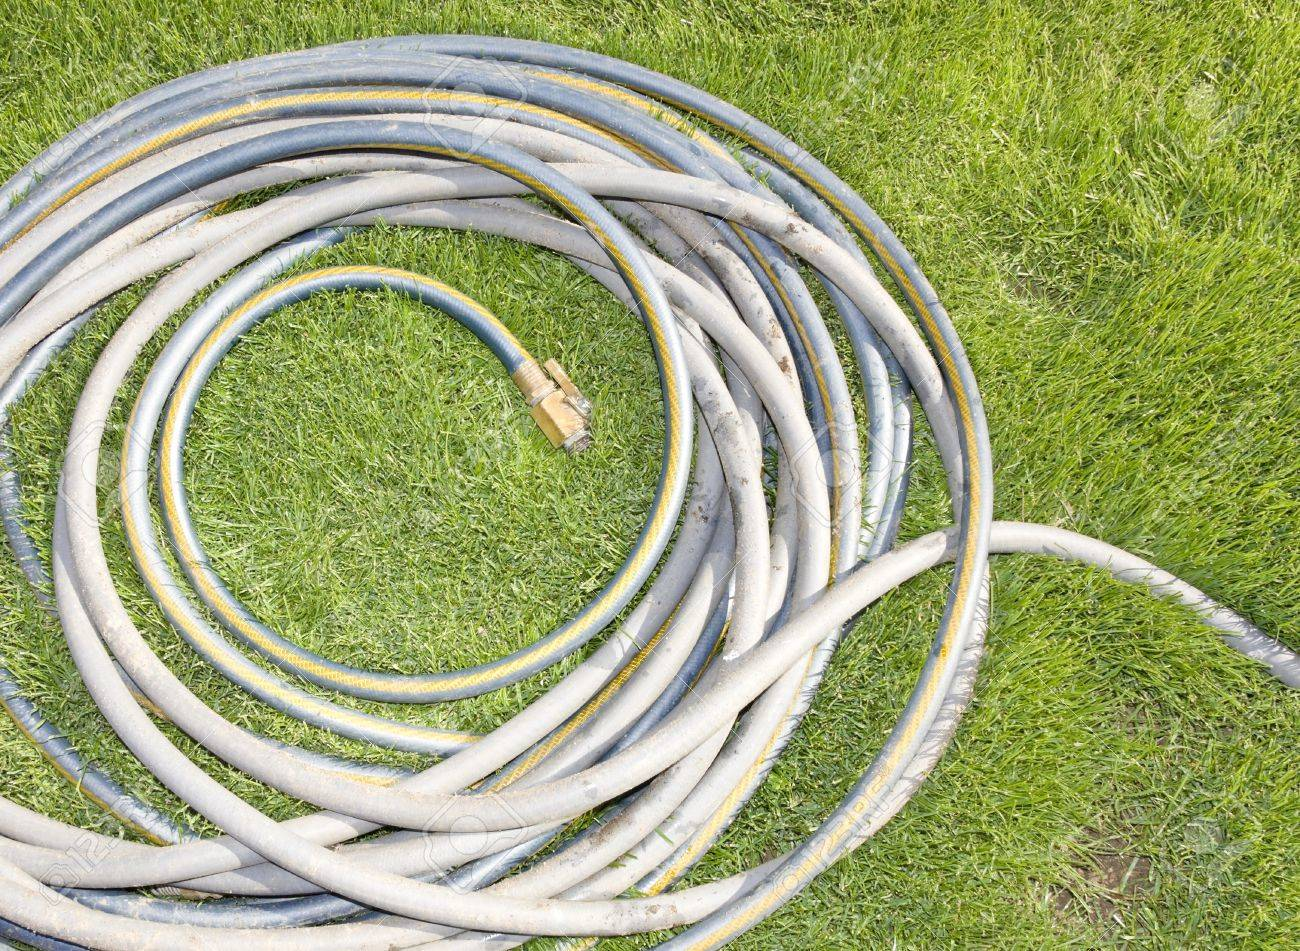 Coiled Garden Hose In The Grass Top View Of A Grey Rubber Water